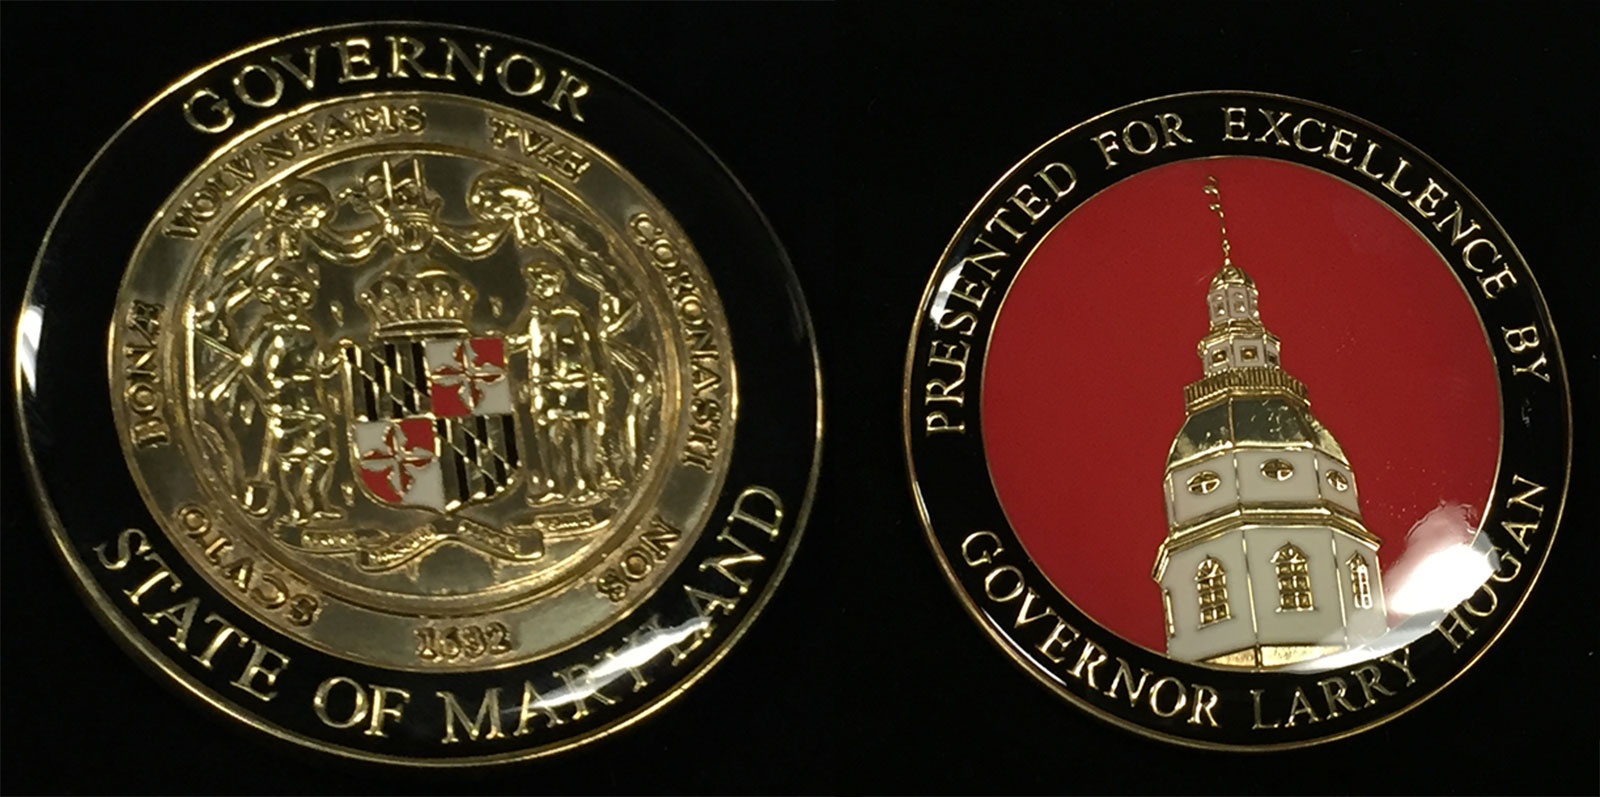 This is the other coin, shown in the photo with both sides, given to the flood heroes from Maryland Gov. Larry Hogan. (WTOP/Michelle Basch)